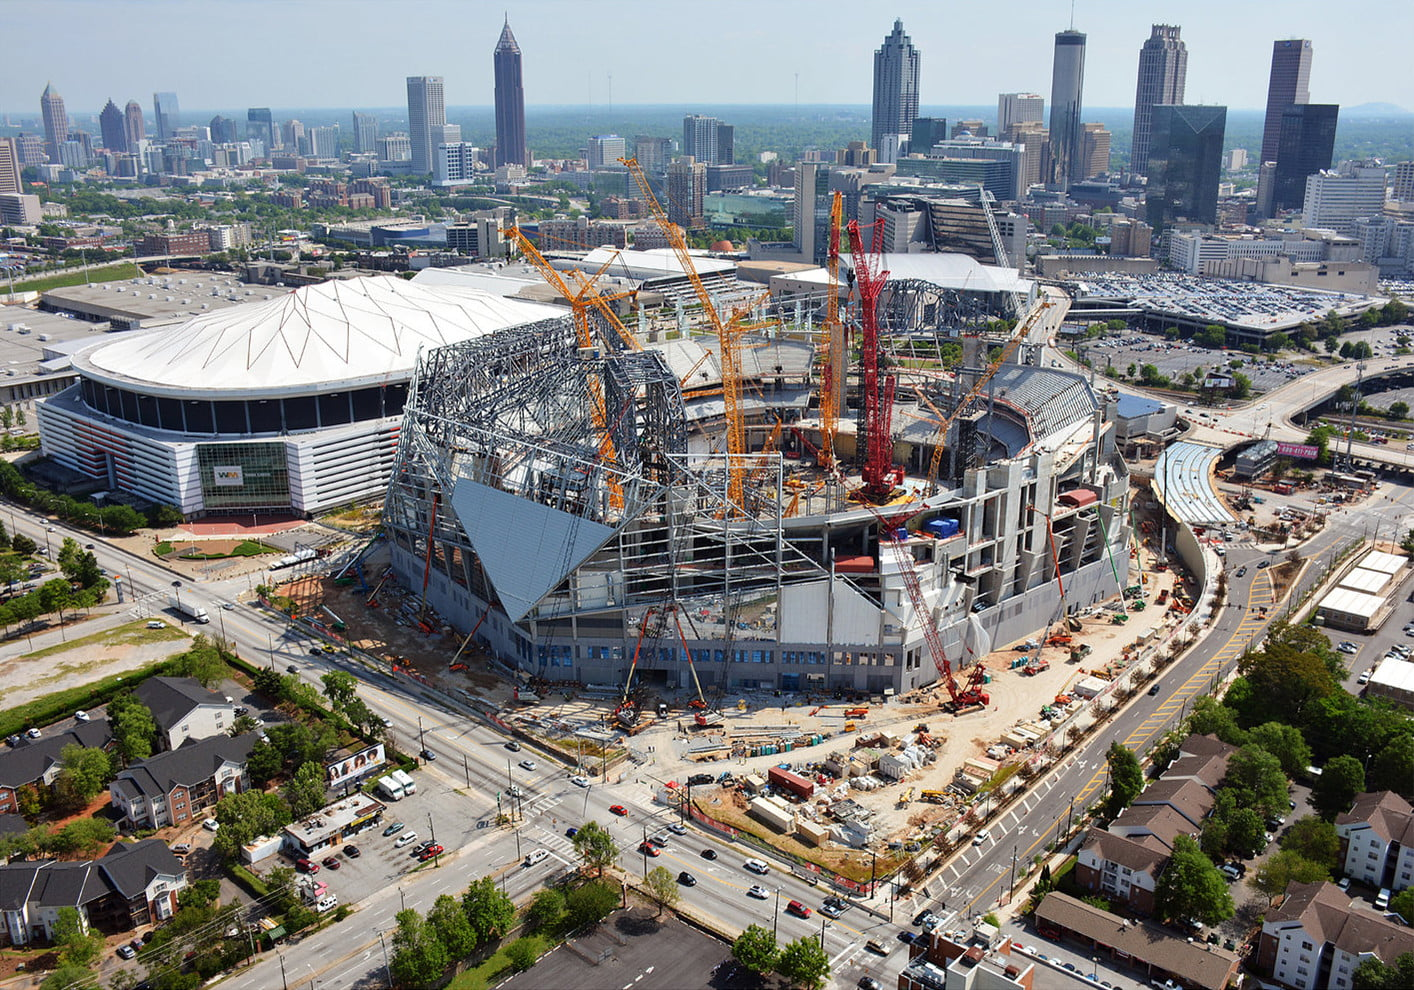 Dt10 fans and players compete for stardom in future for Mercedes benz stadium atlanta hotels